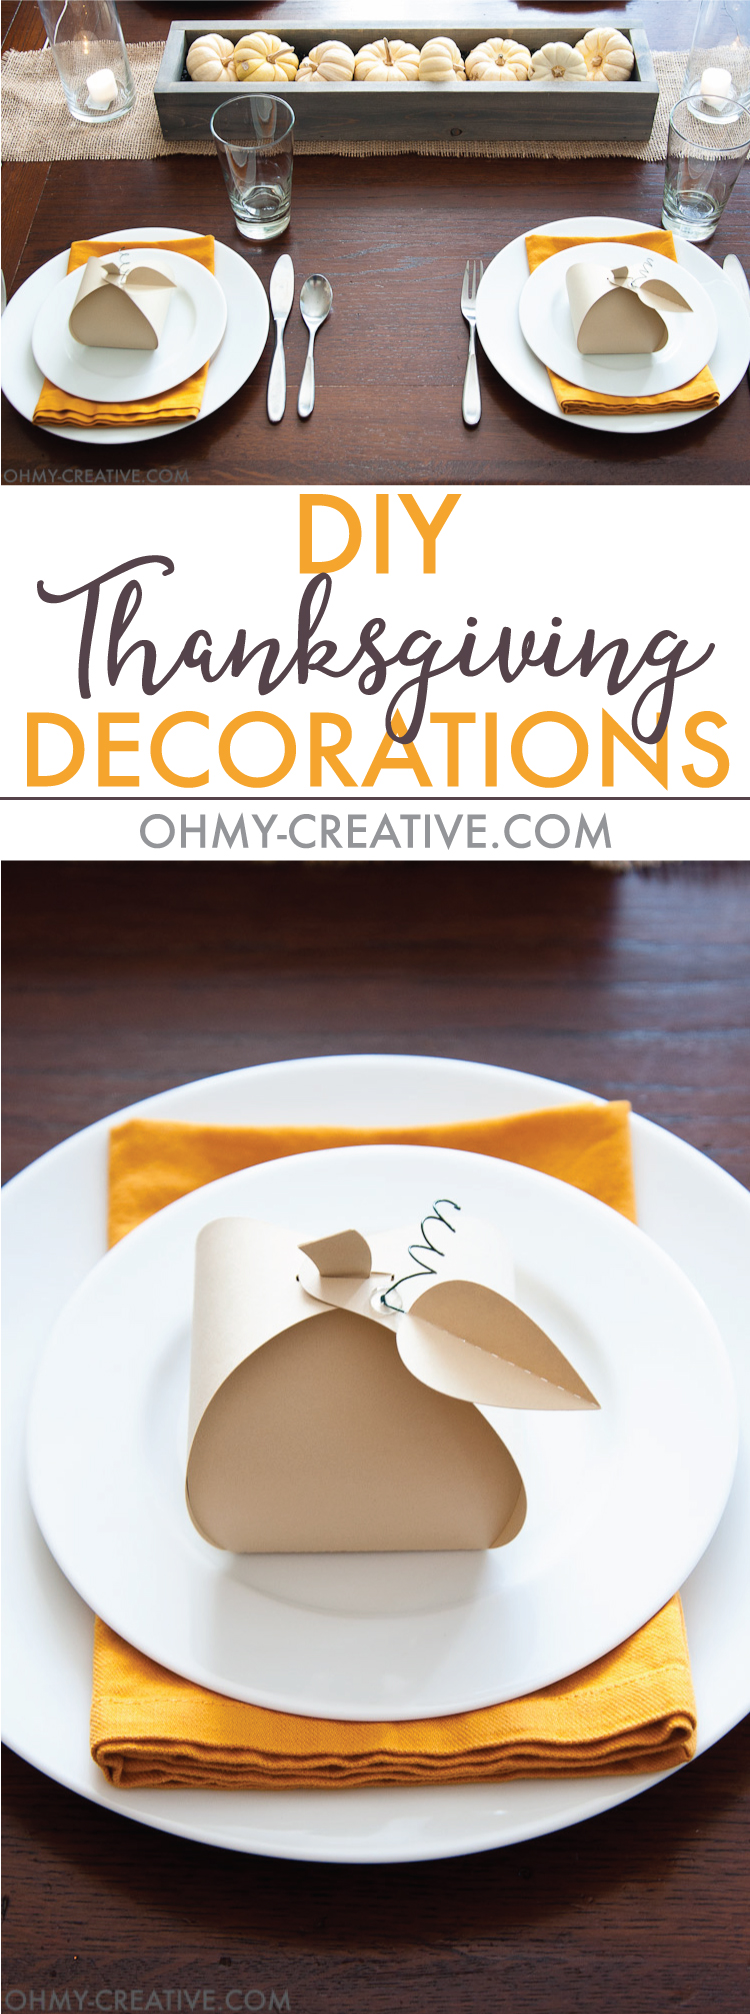 Pumpkin diy thanksgiving decorations oh my creative